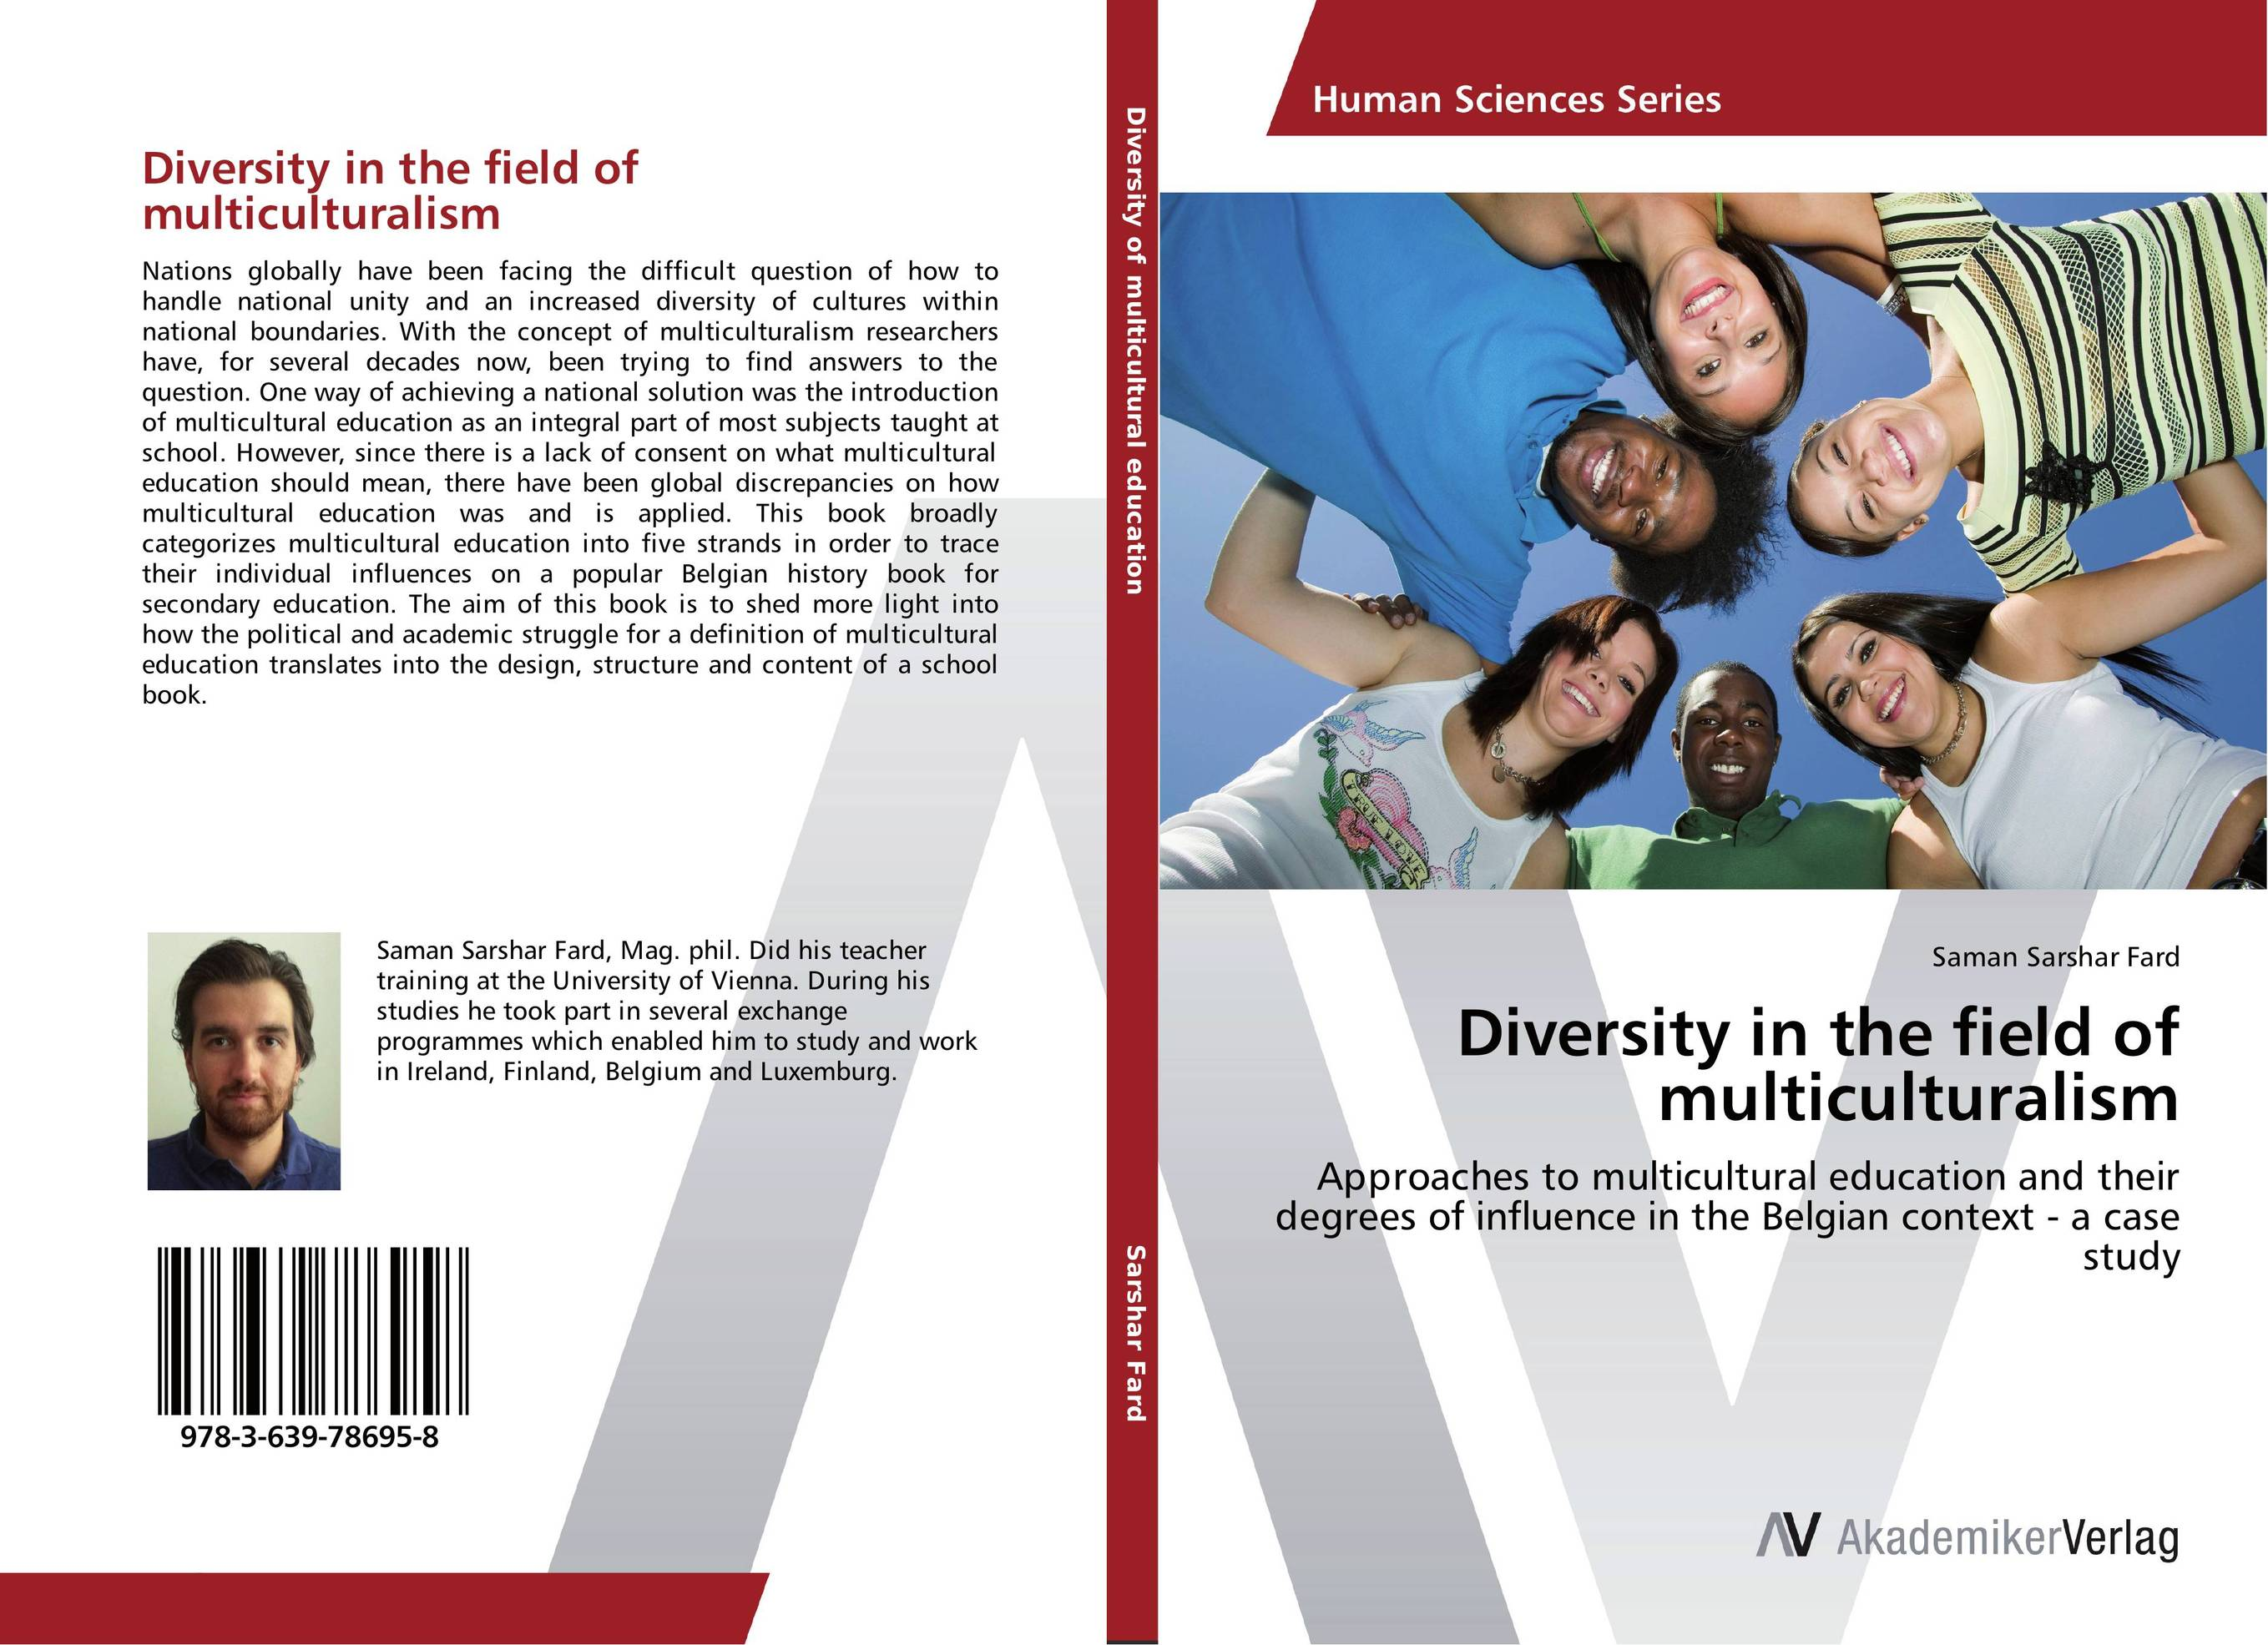 Diversity in the field of multiculturalism peace education at the national university of rwanda